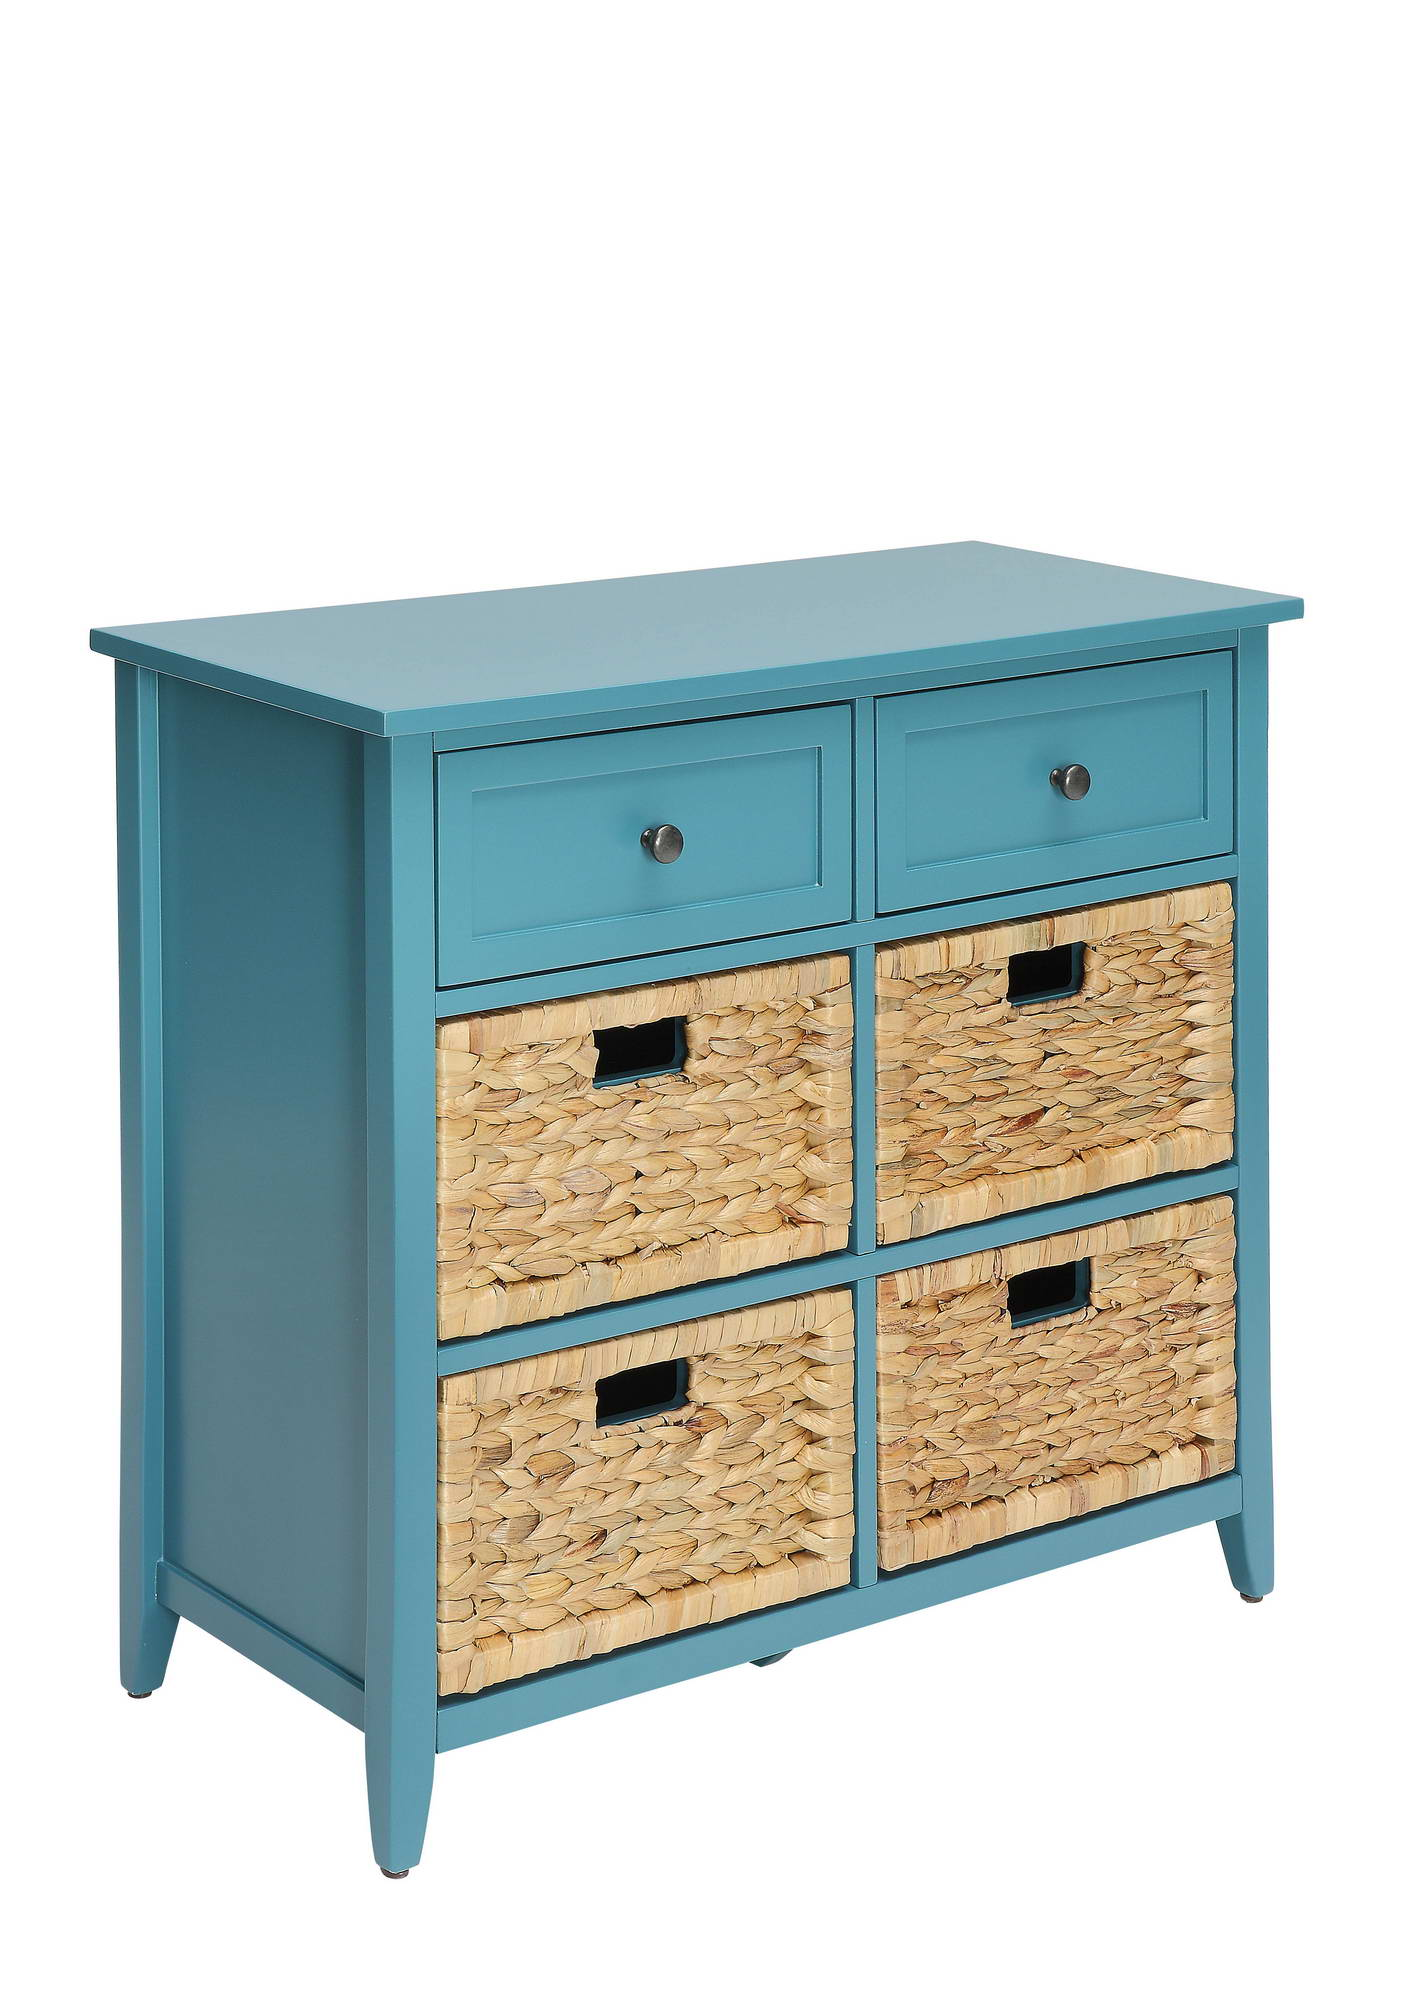 Teal Console Table Cabinet W/ Drawers & Baskets